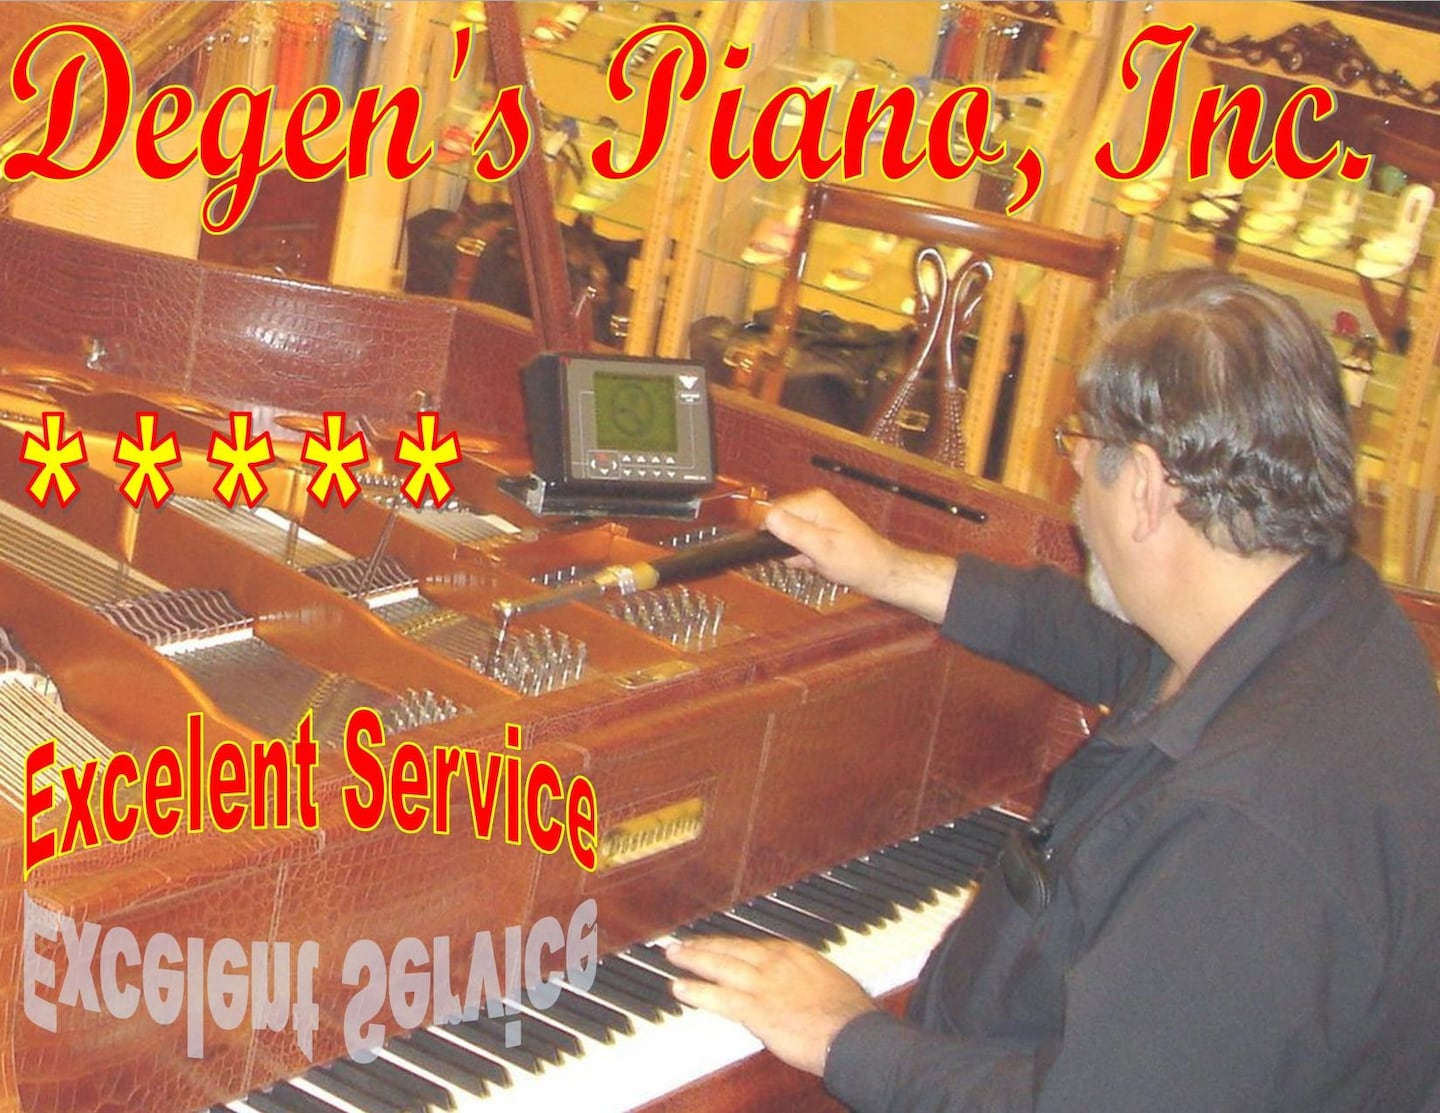 Degen's Piano Inc